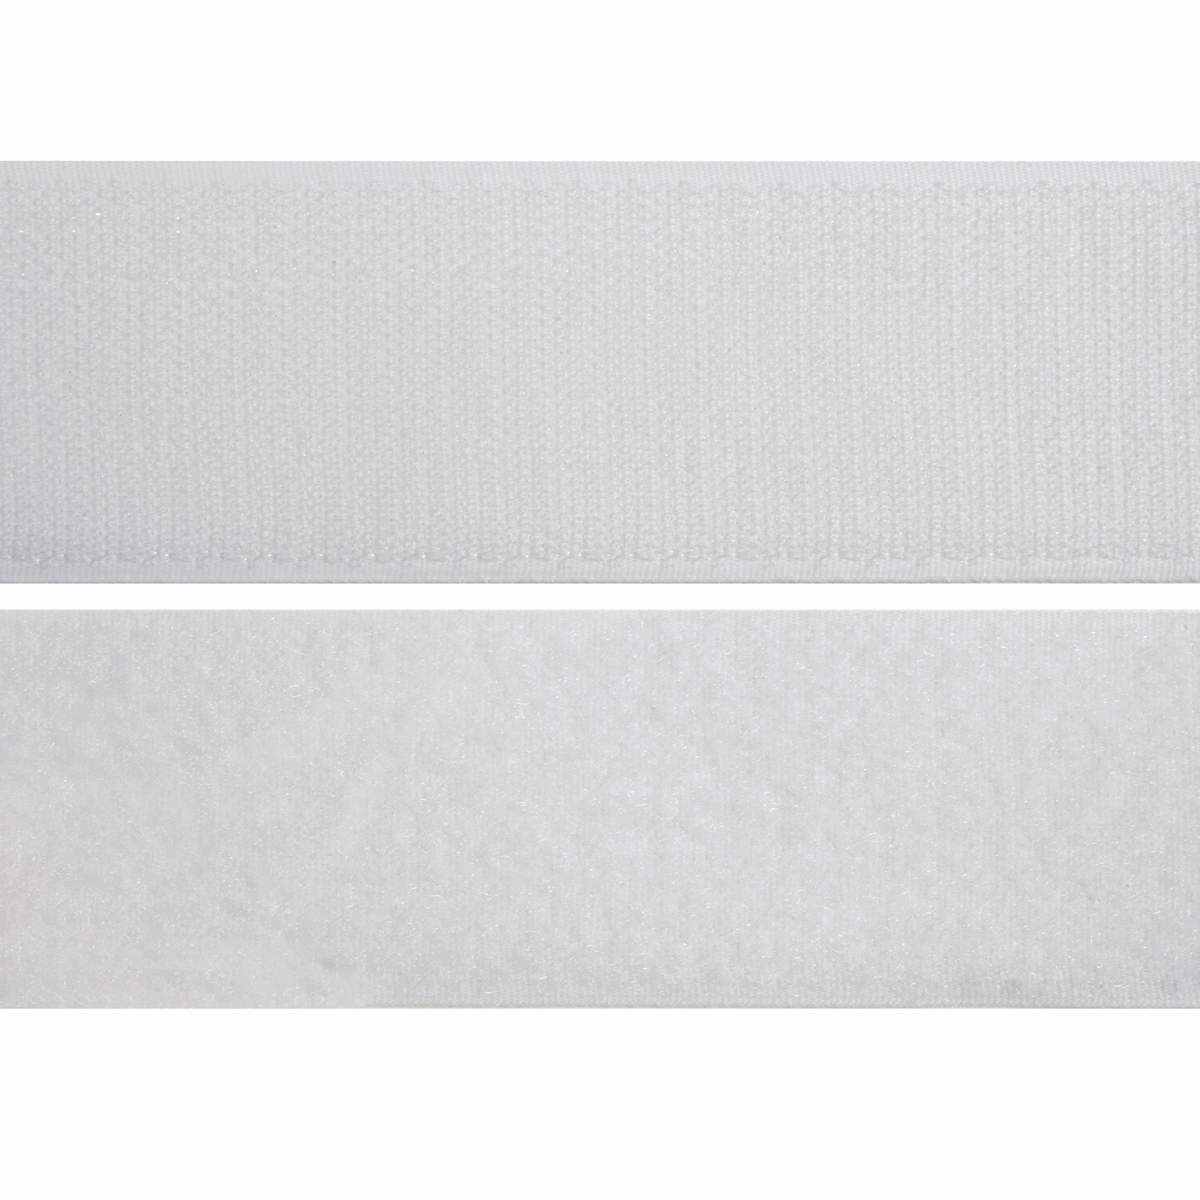 Picture of Hook & Loop Tape: Sew & Sew: 10m x 20mm: White